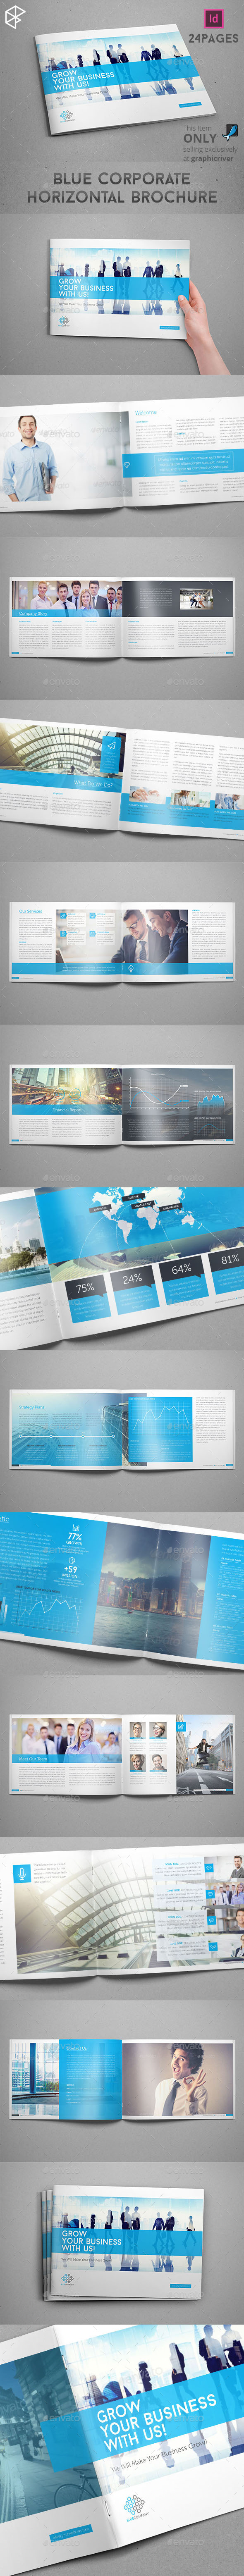 Blue Corporate Horizontal Brochure - Corporate Brochures